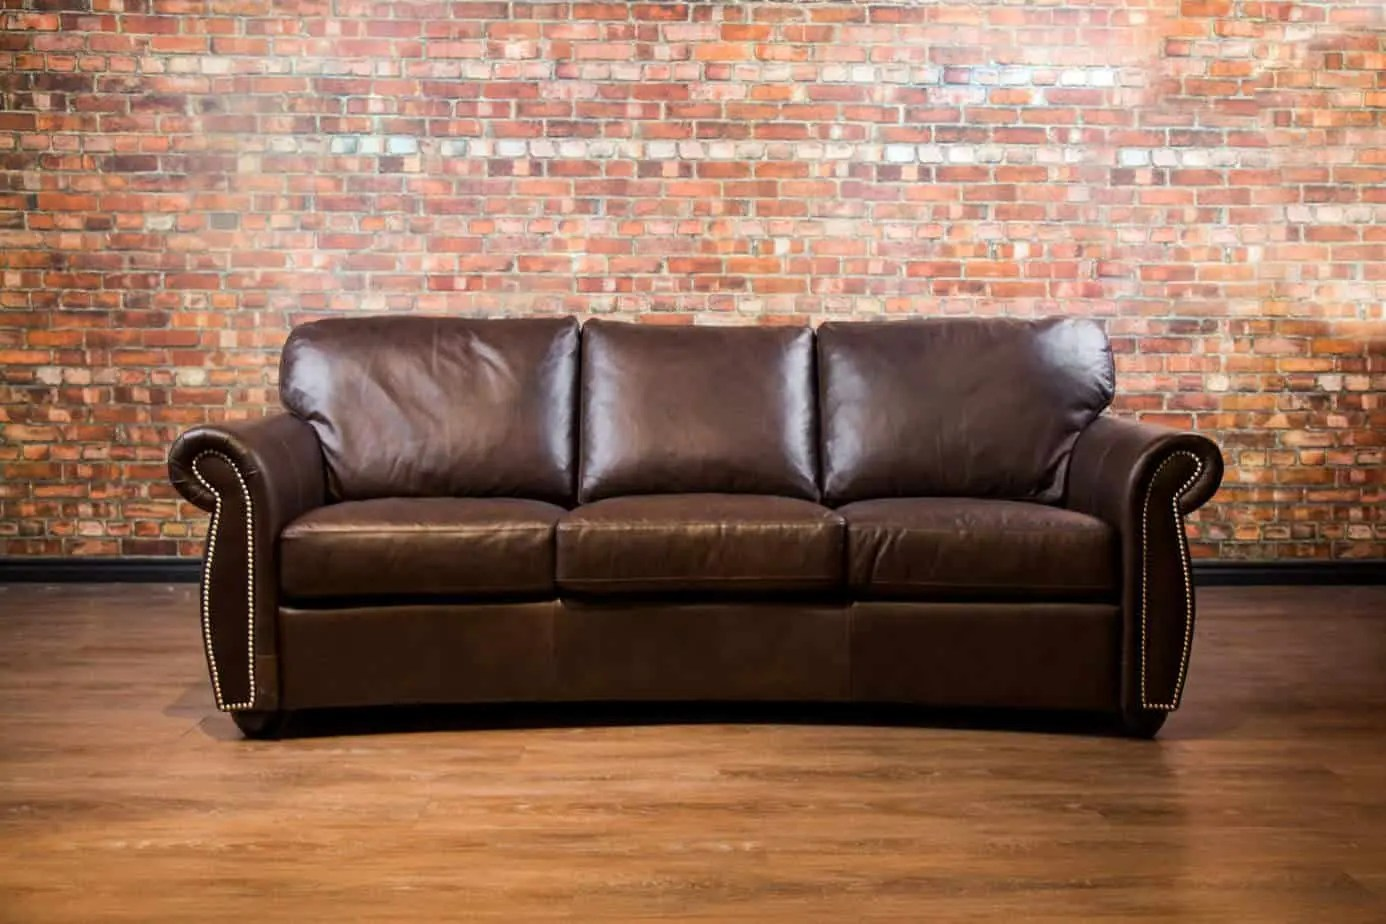 leather sofa deals toronto small daybed furniture canada freebies assalamualaikum cute